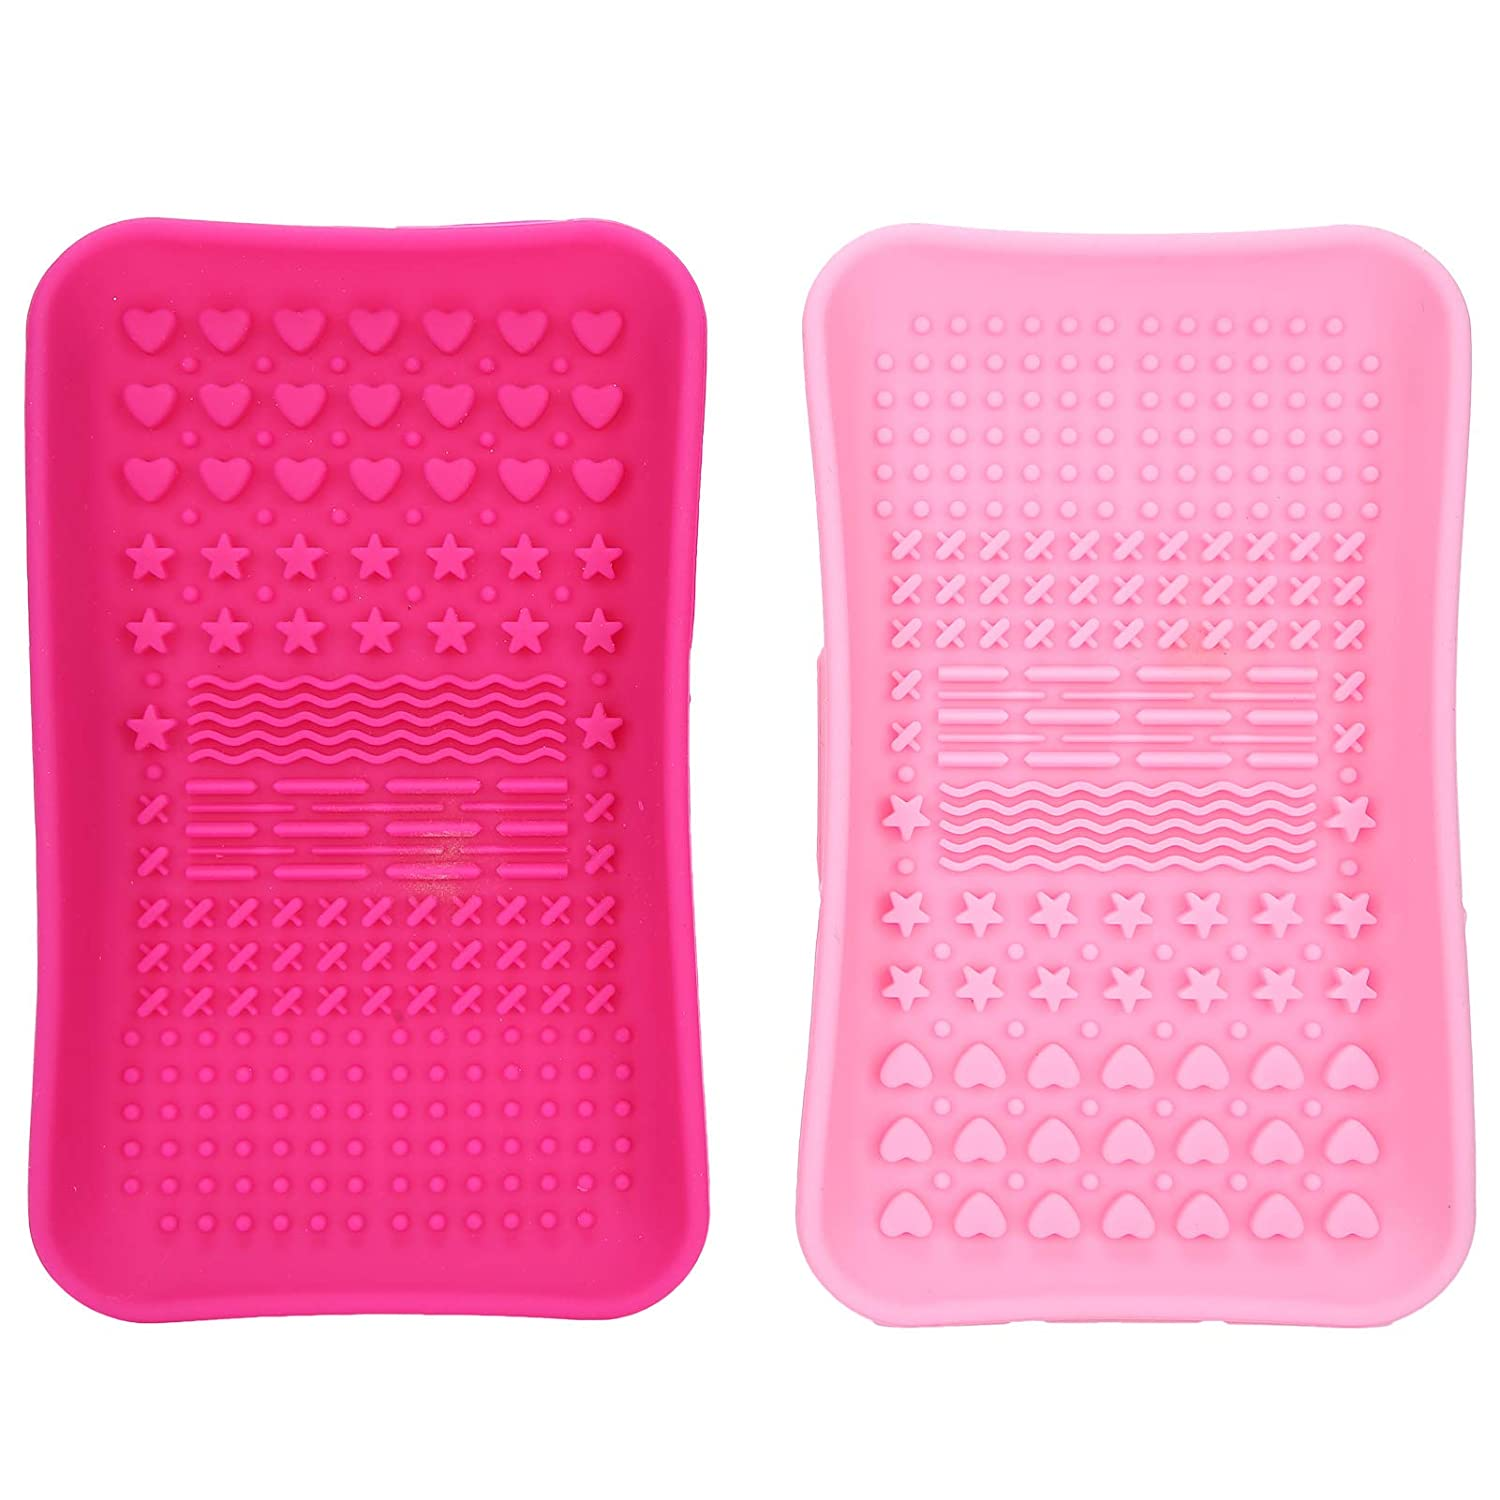 Cheap sale Brush Cleaning Scruber Mat Today's only Silicone Cleaner Bru Makeup Pad